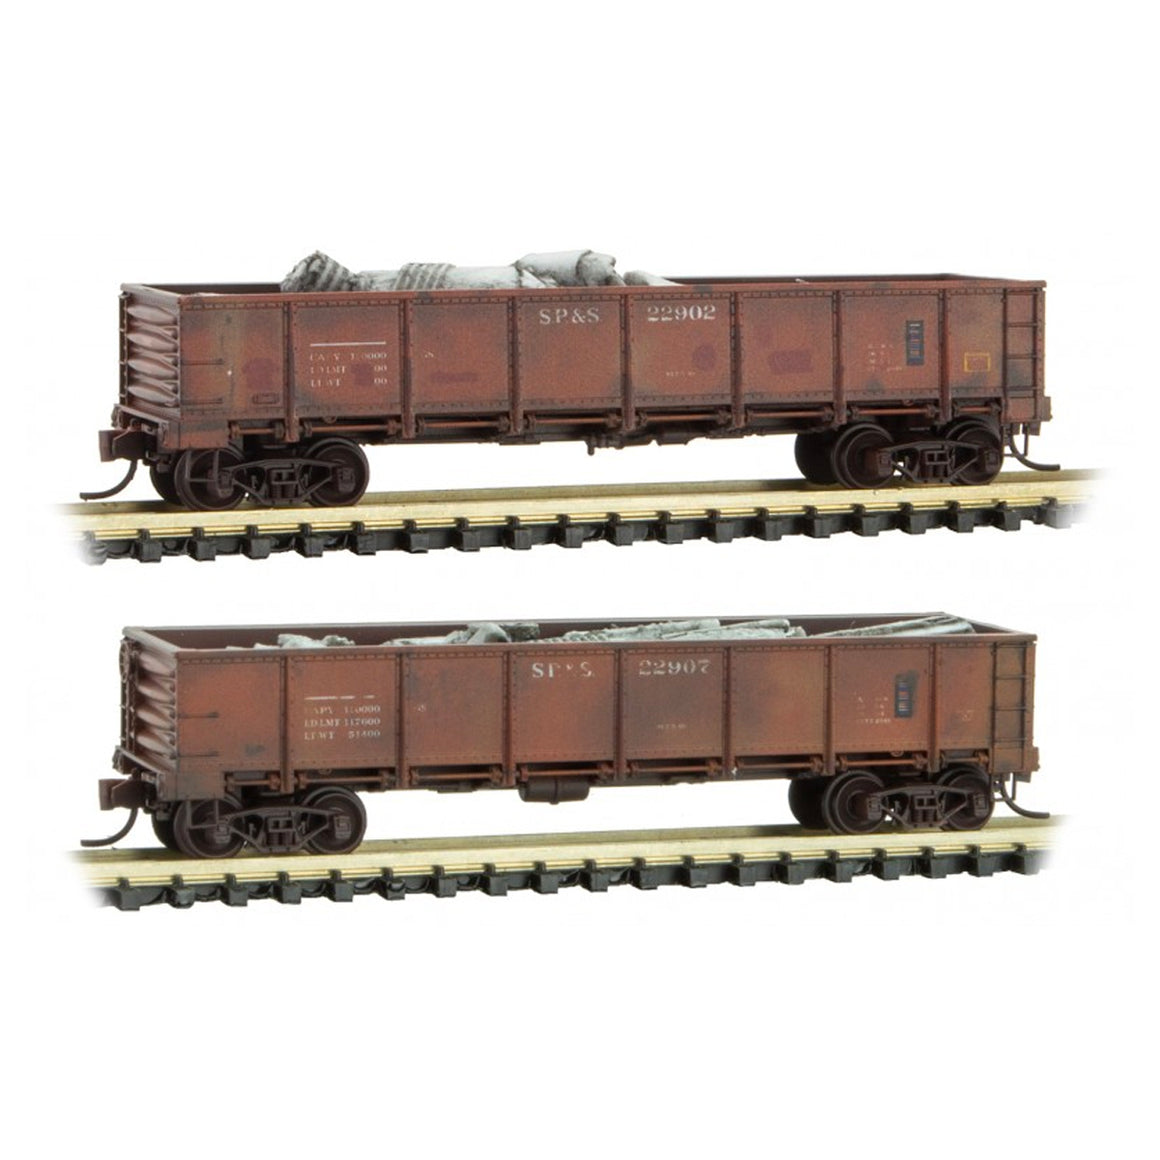 N Scale: Drop Bottom Gondolas - Weathered - SP&S - Two-pack